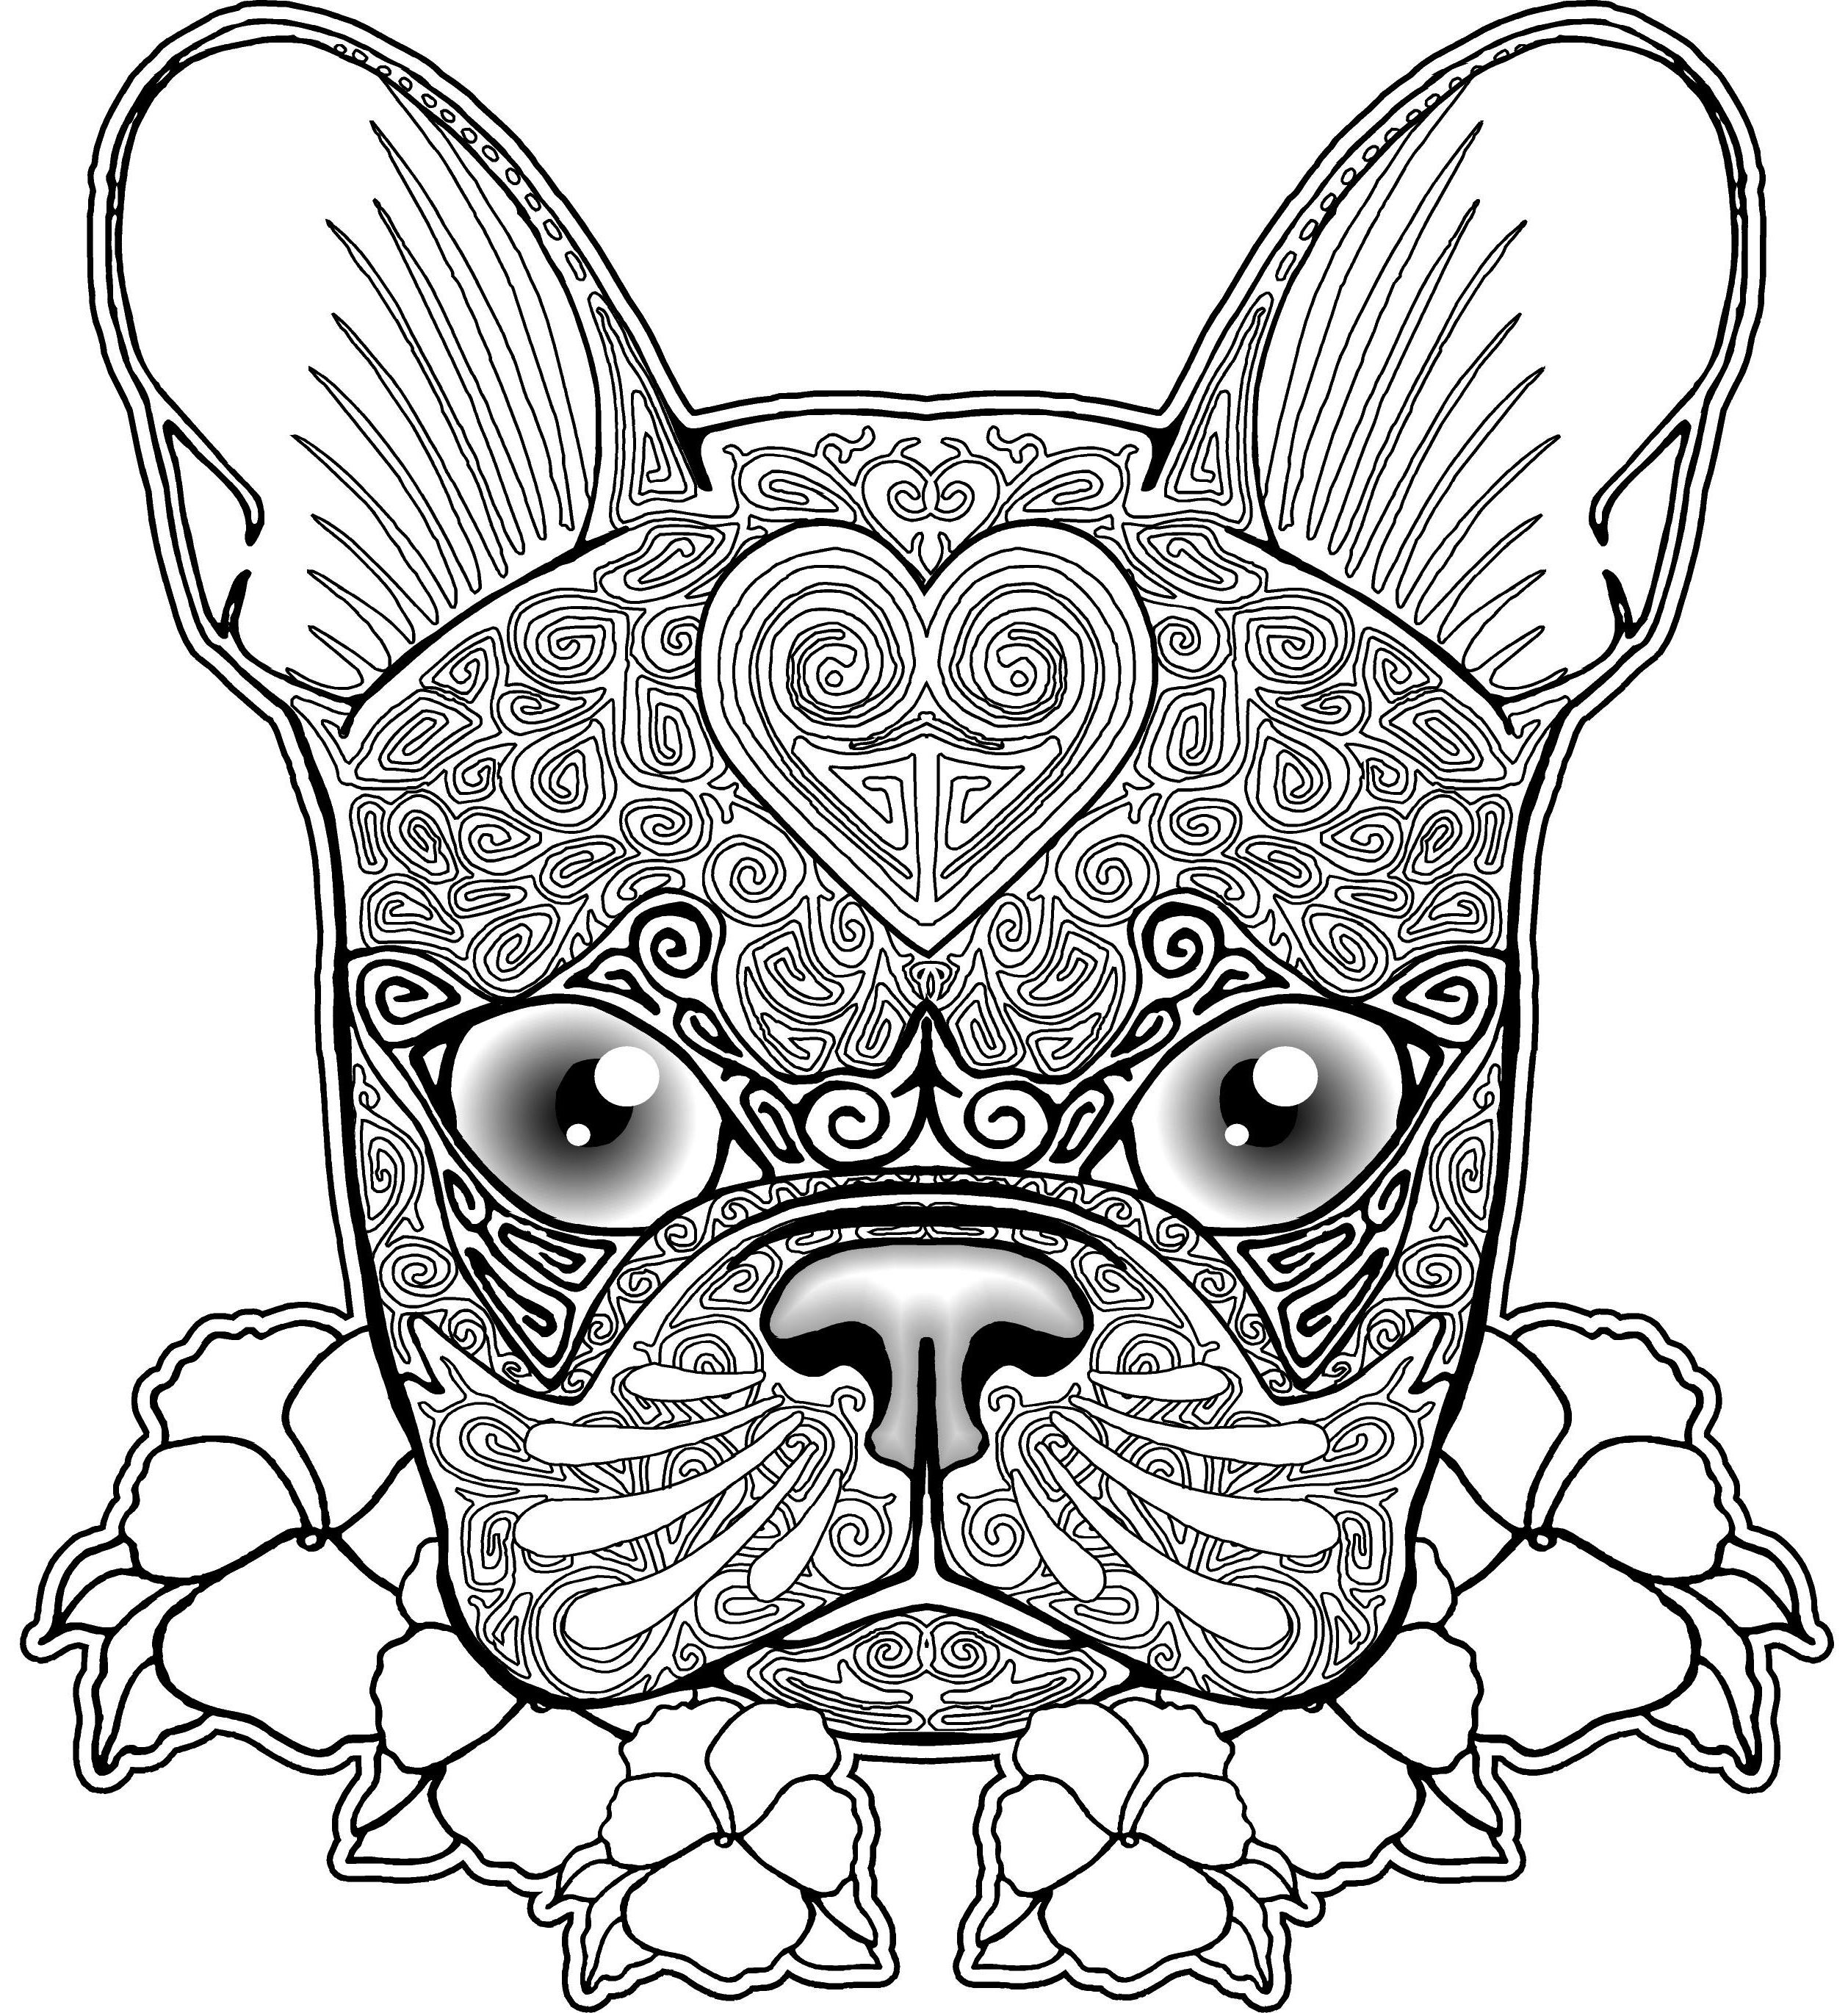 Coloring Pages For Adults: 1000+ Images About Adult Coloring Pages On Pinterest